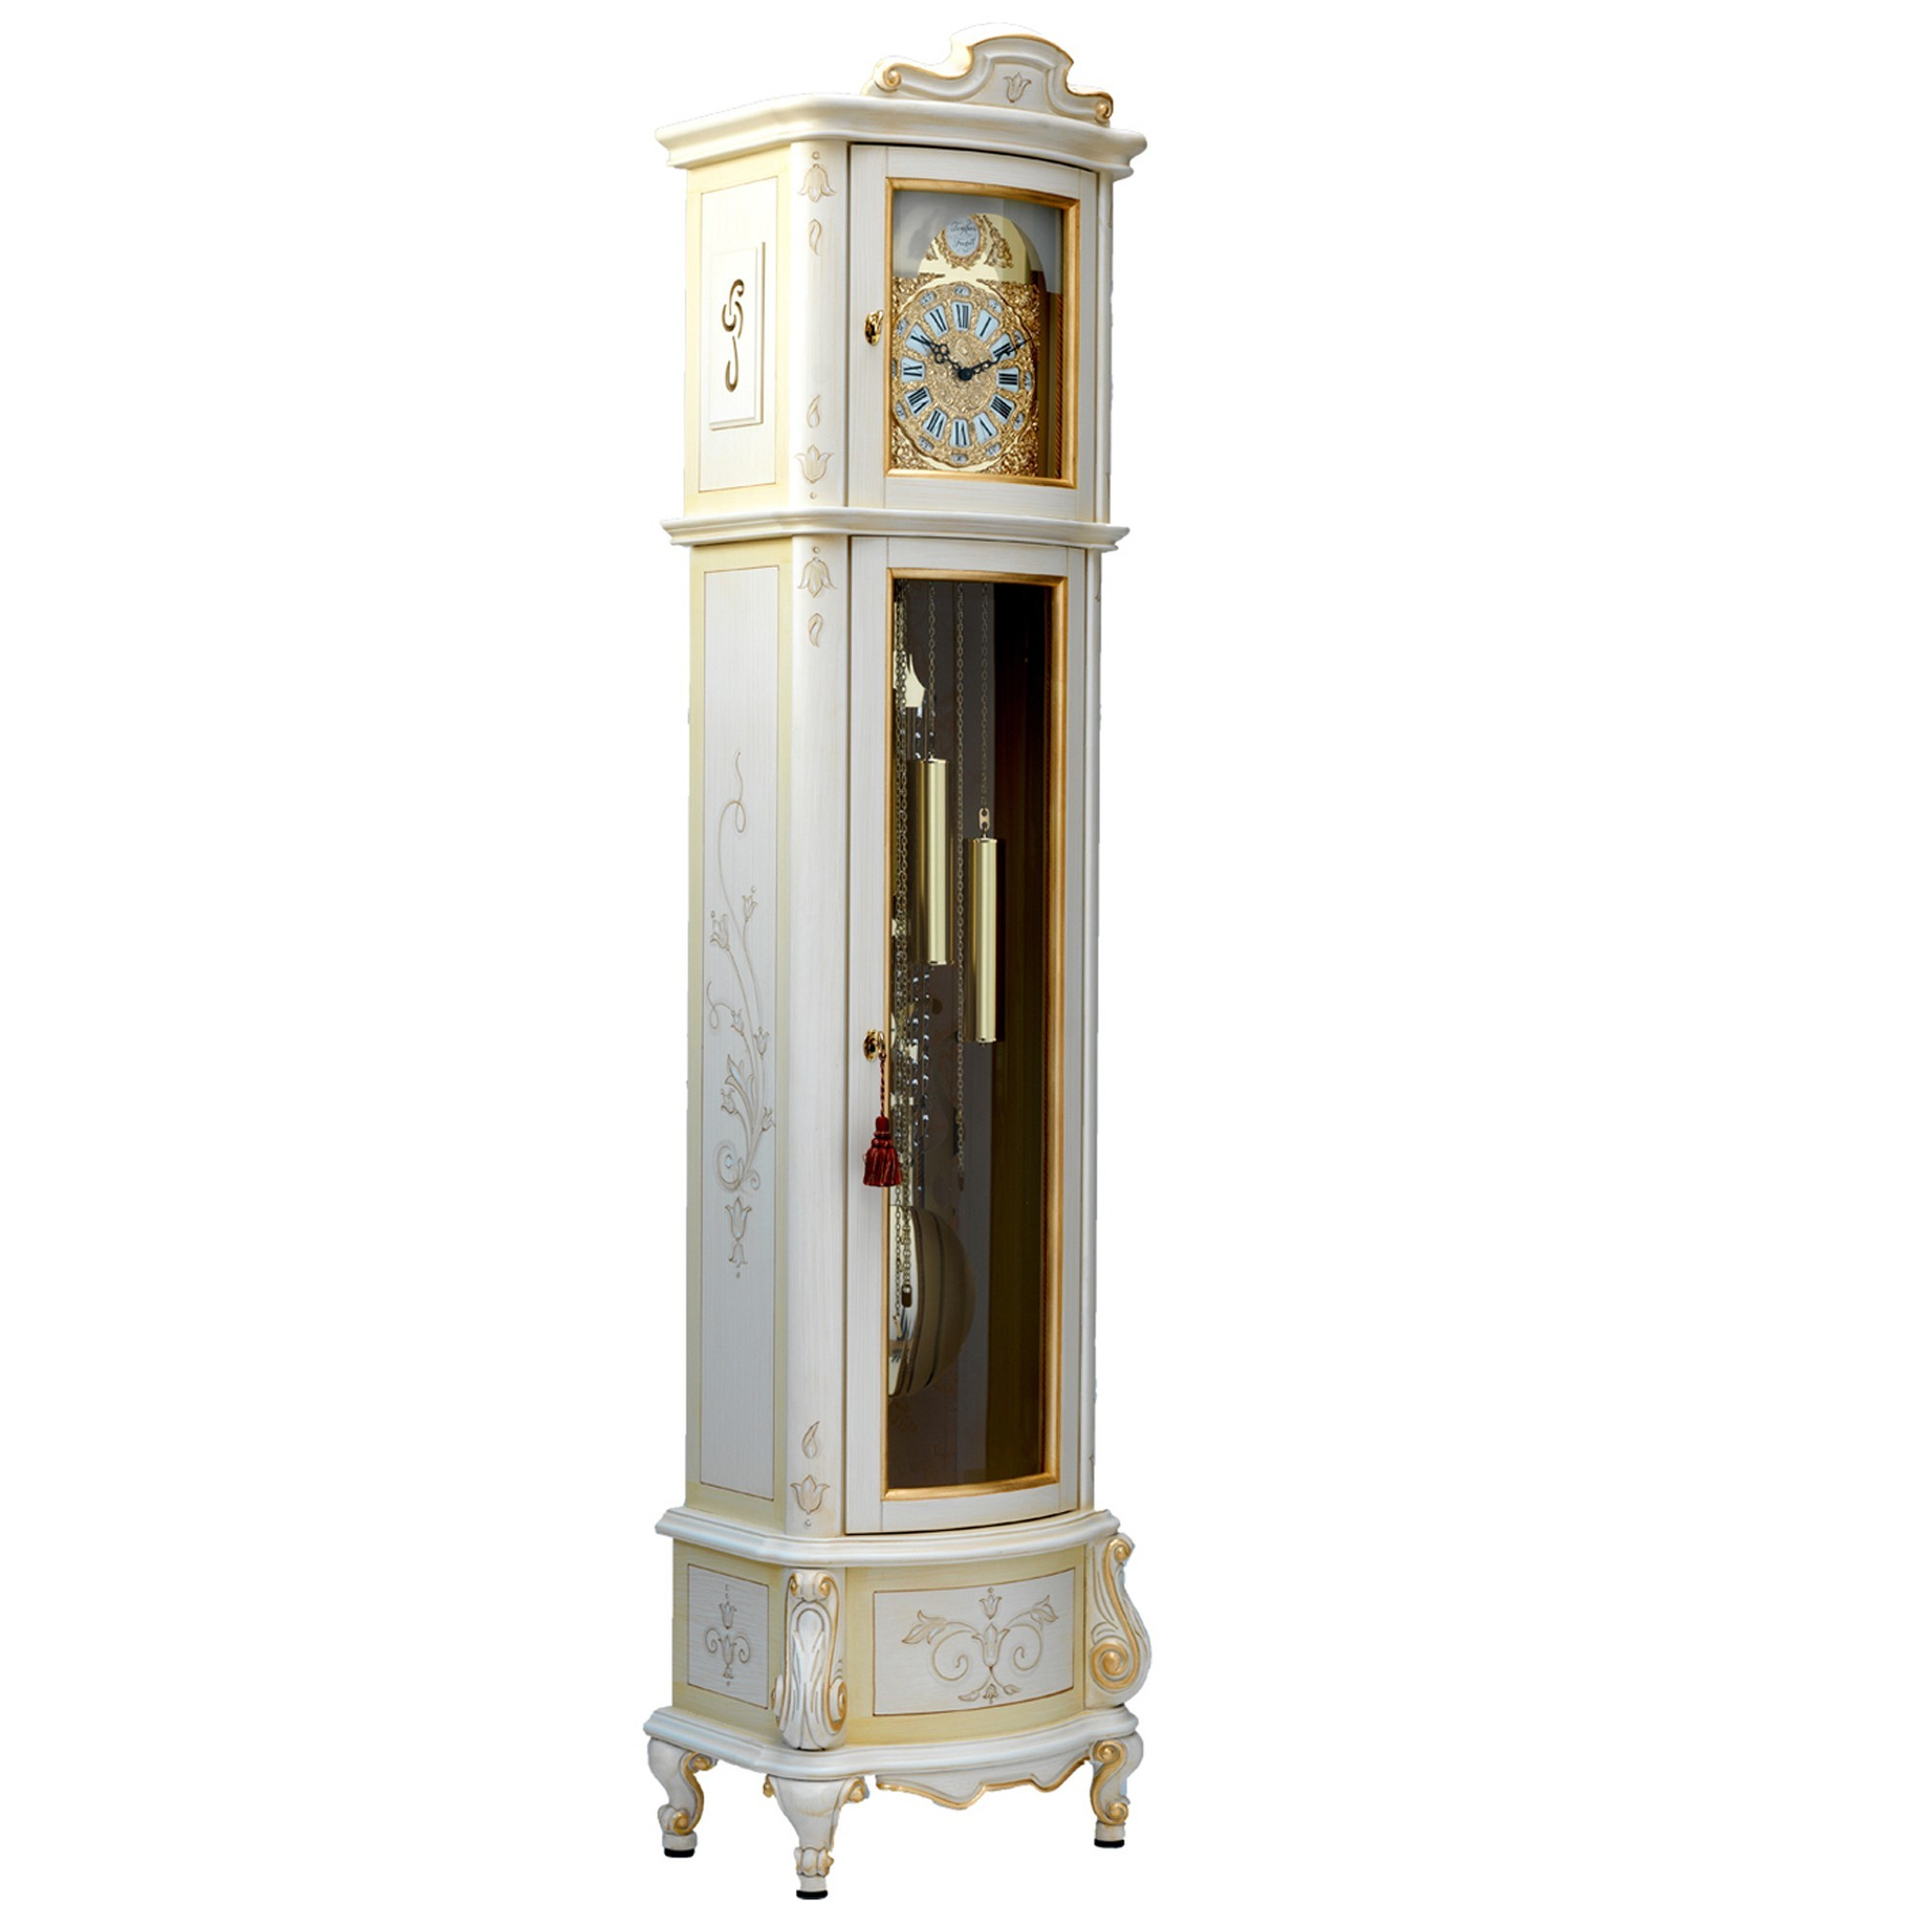 cream hand painted grandfather clock - grandfather clocks